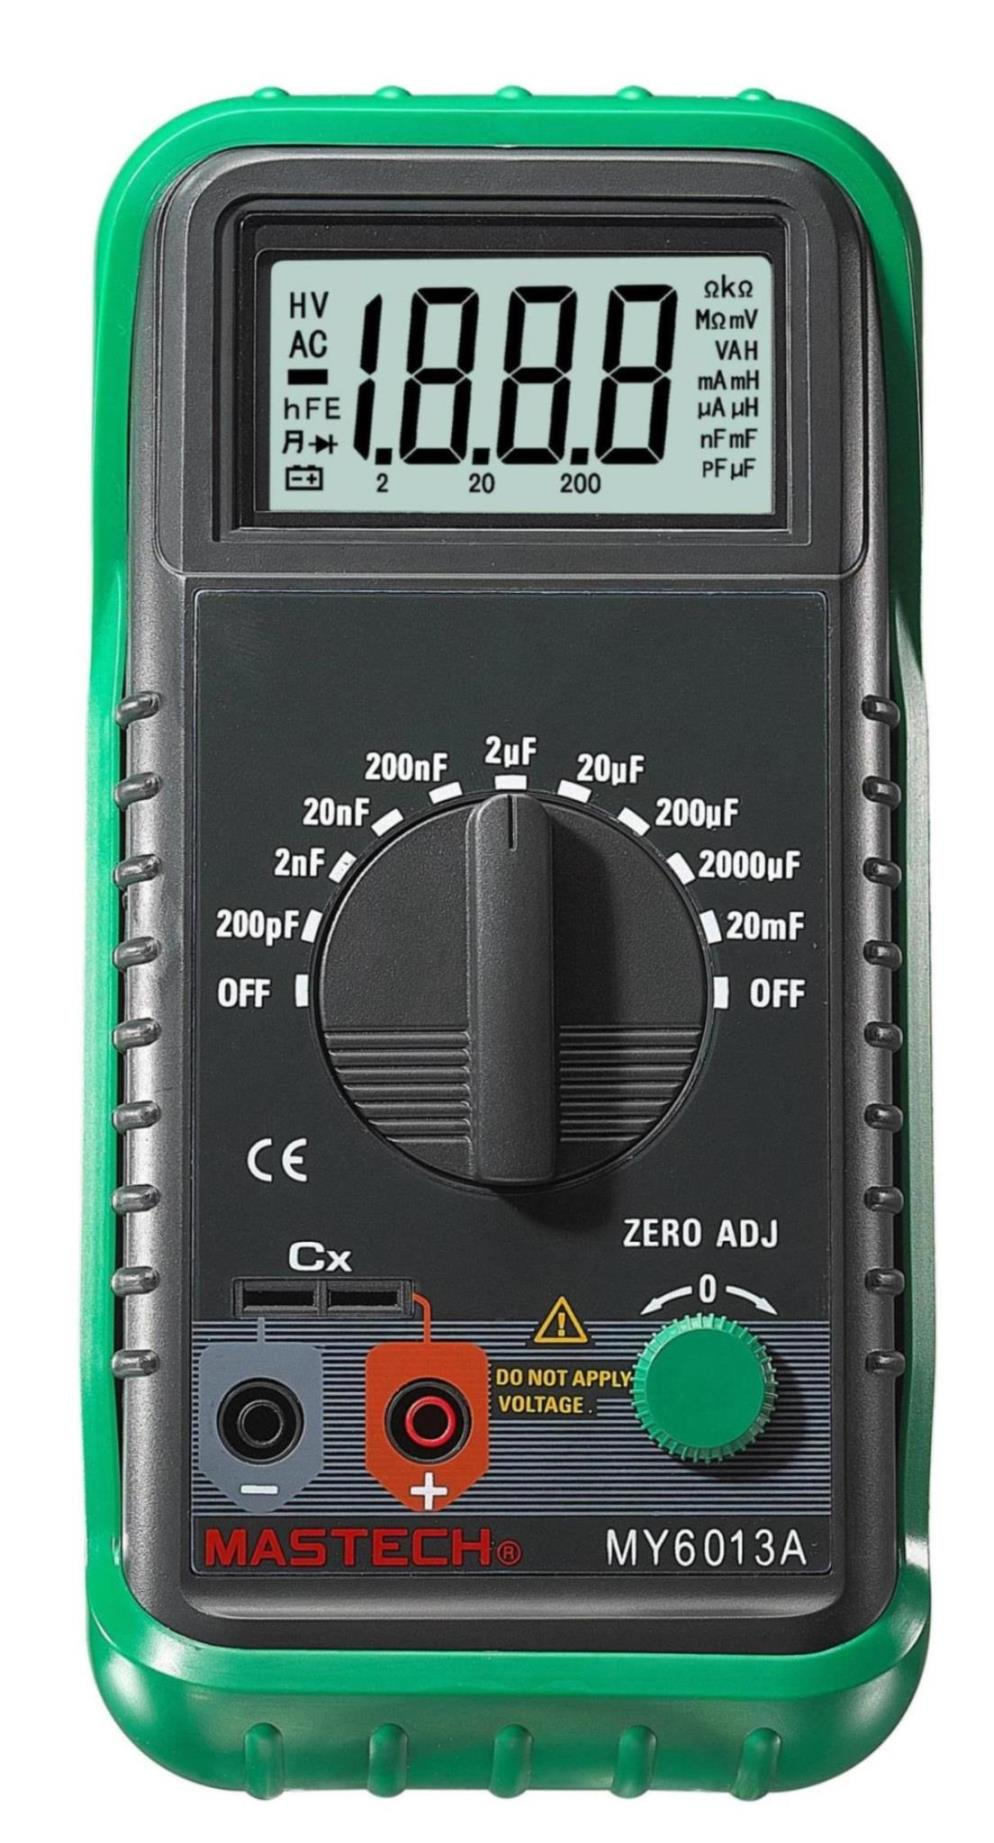 Vici Vc6243 High Precision Digital Capacitance Meter Inductance Is For Sale Professional 200khz Benchtop Lcr Bridge Mastech Ms6013 1999 Counts Portable 3 1 2 Capacitor Tester 200pf To